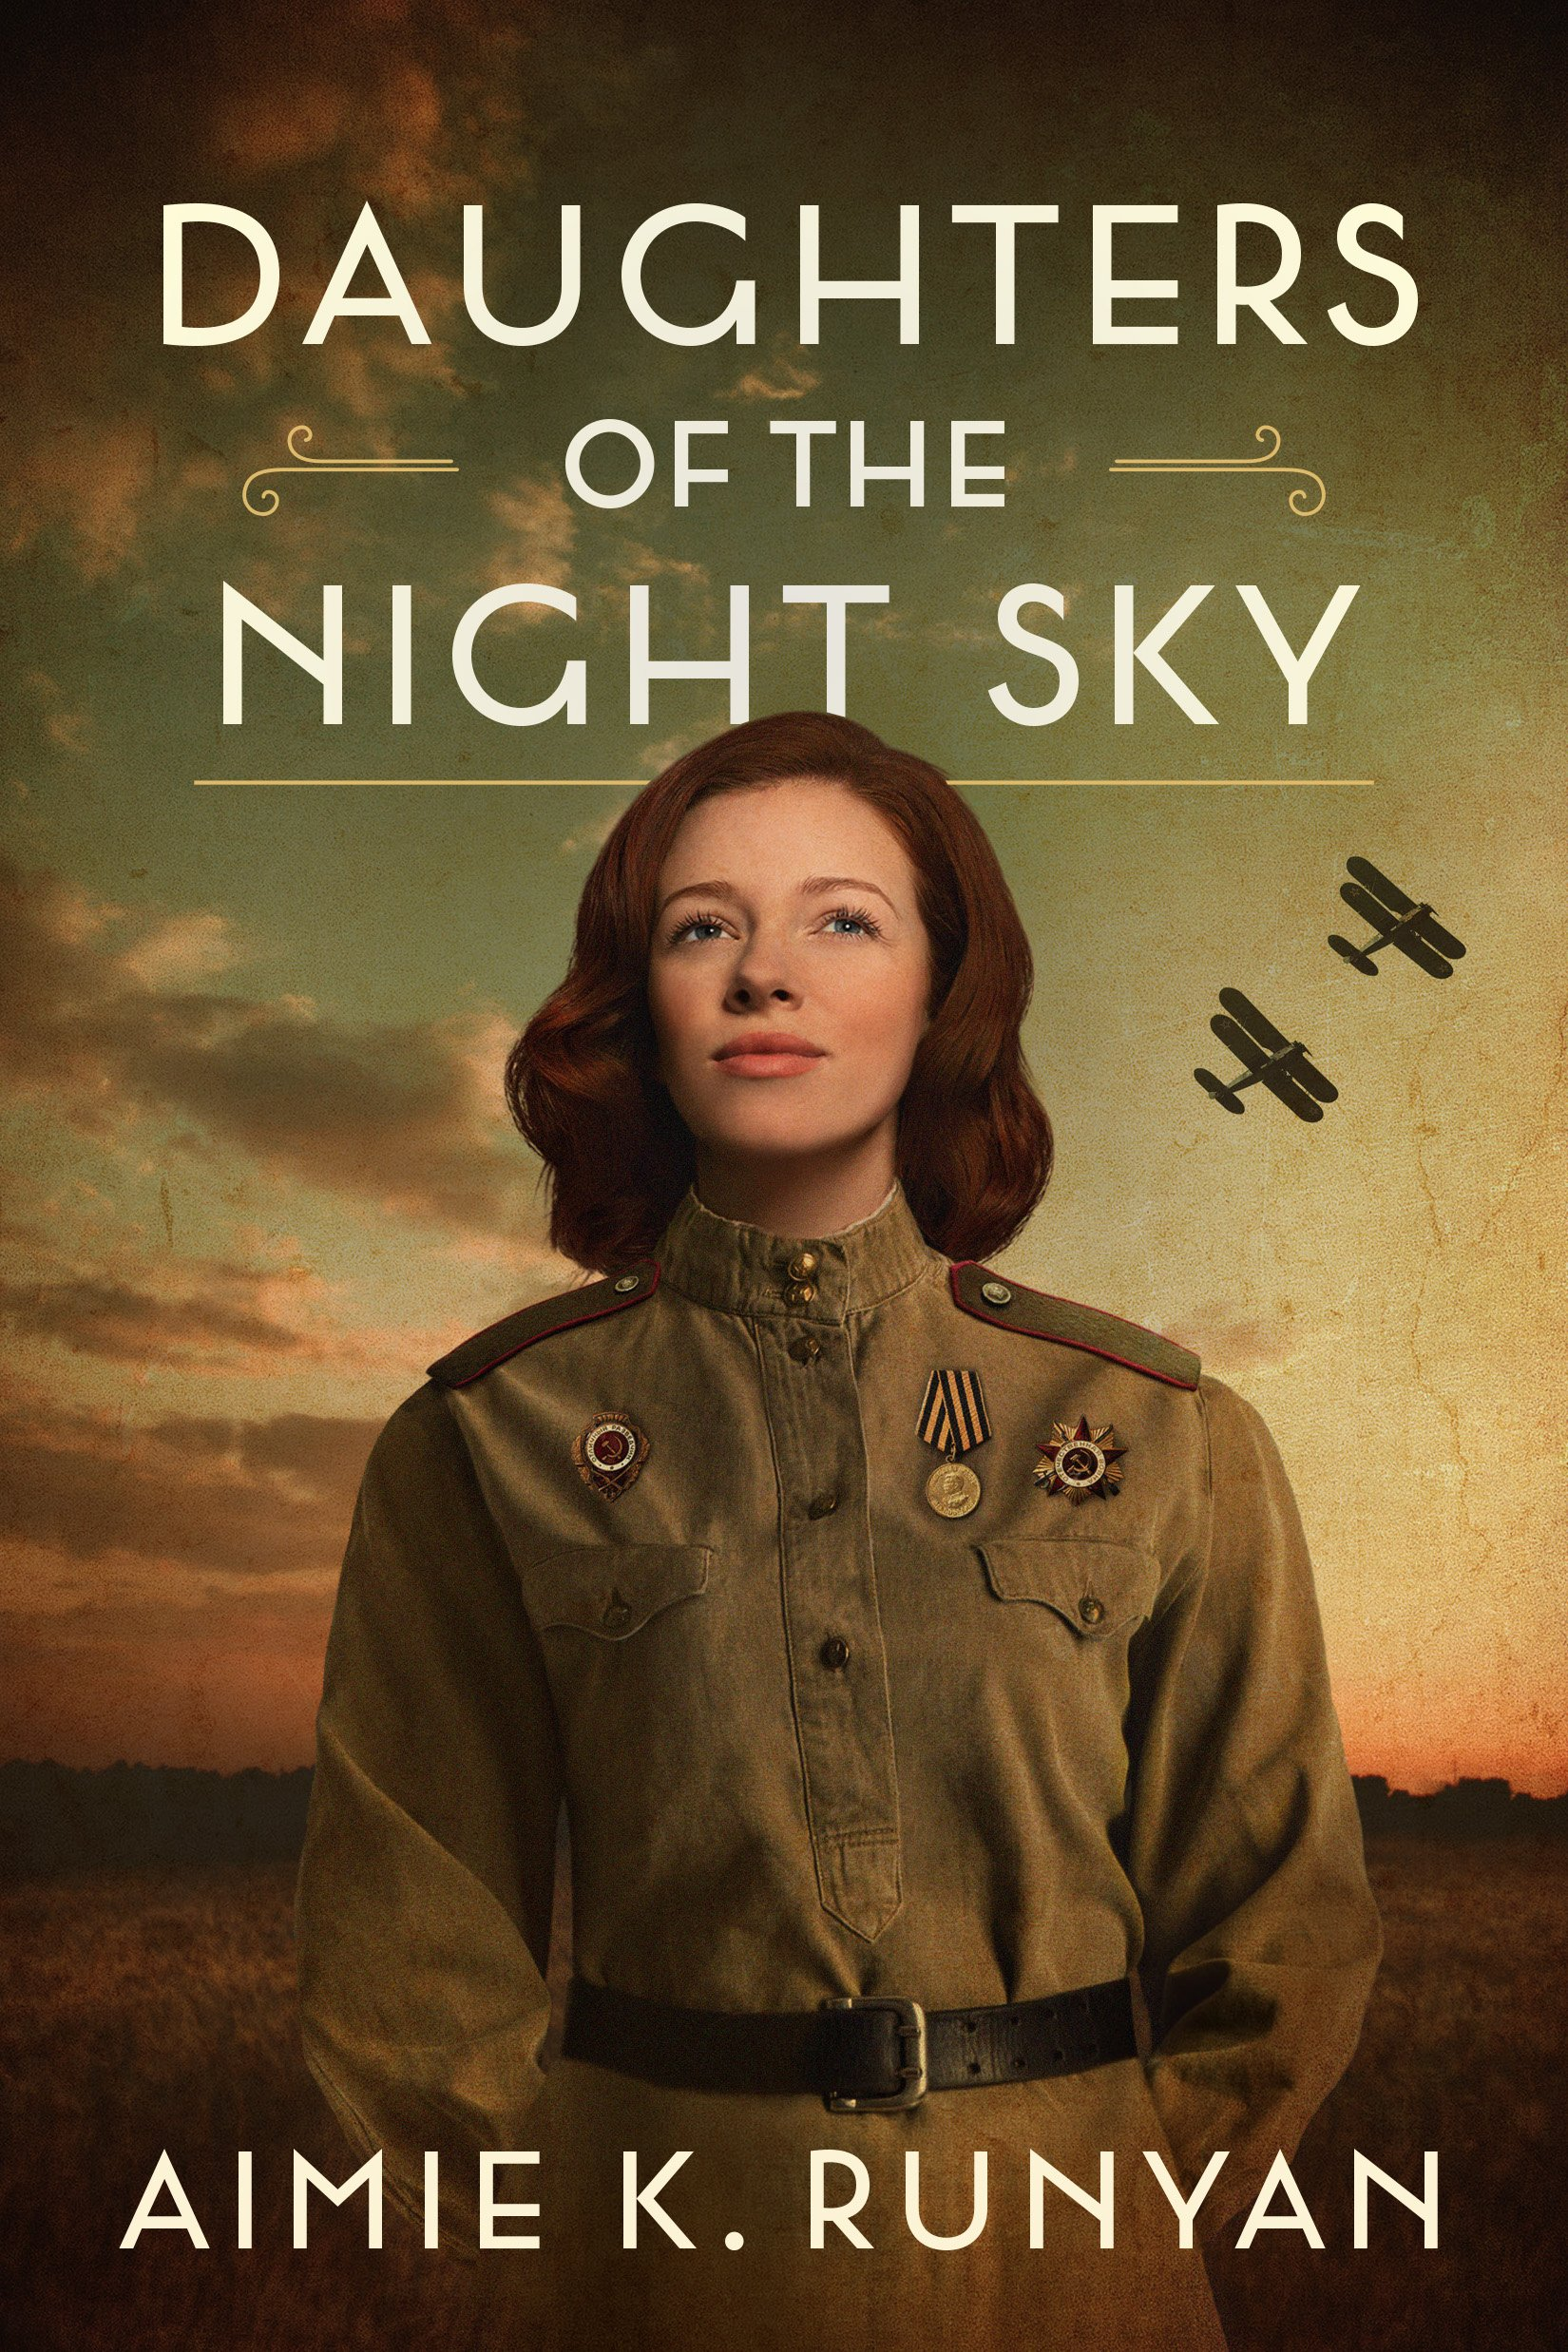 Download ebook Daughters of the Night Sky